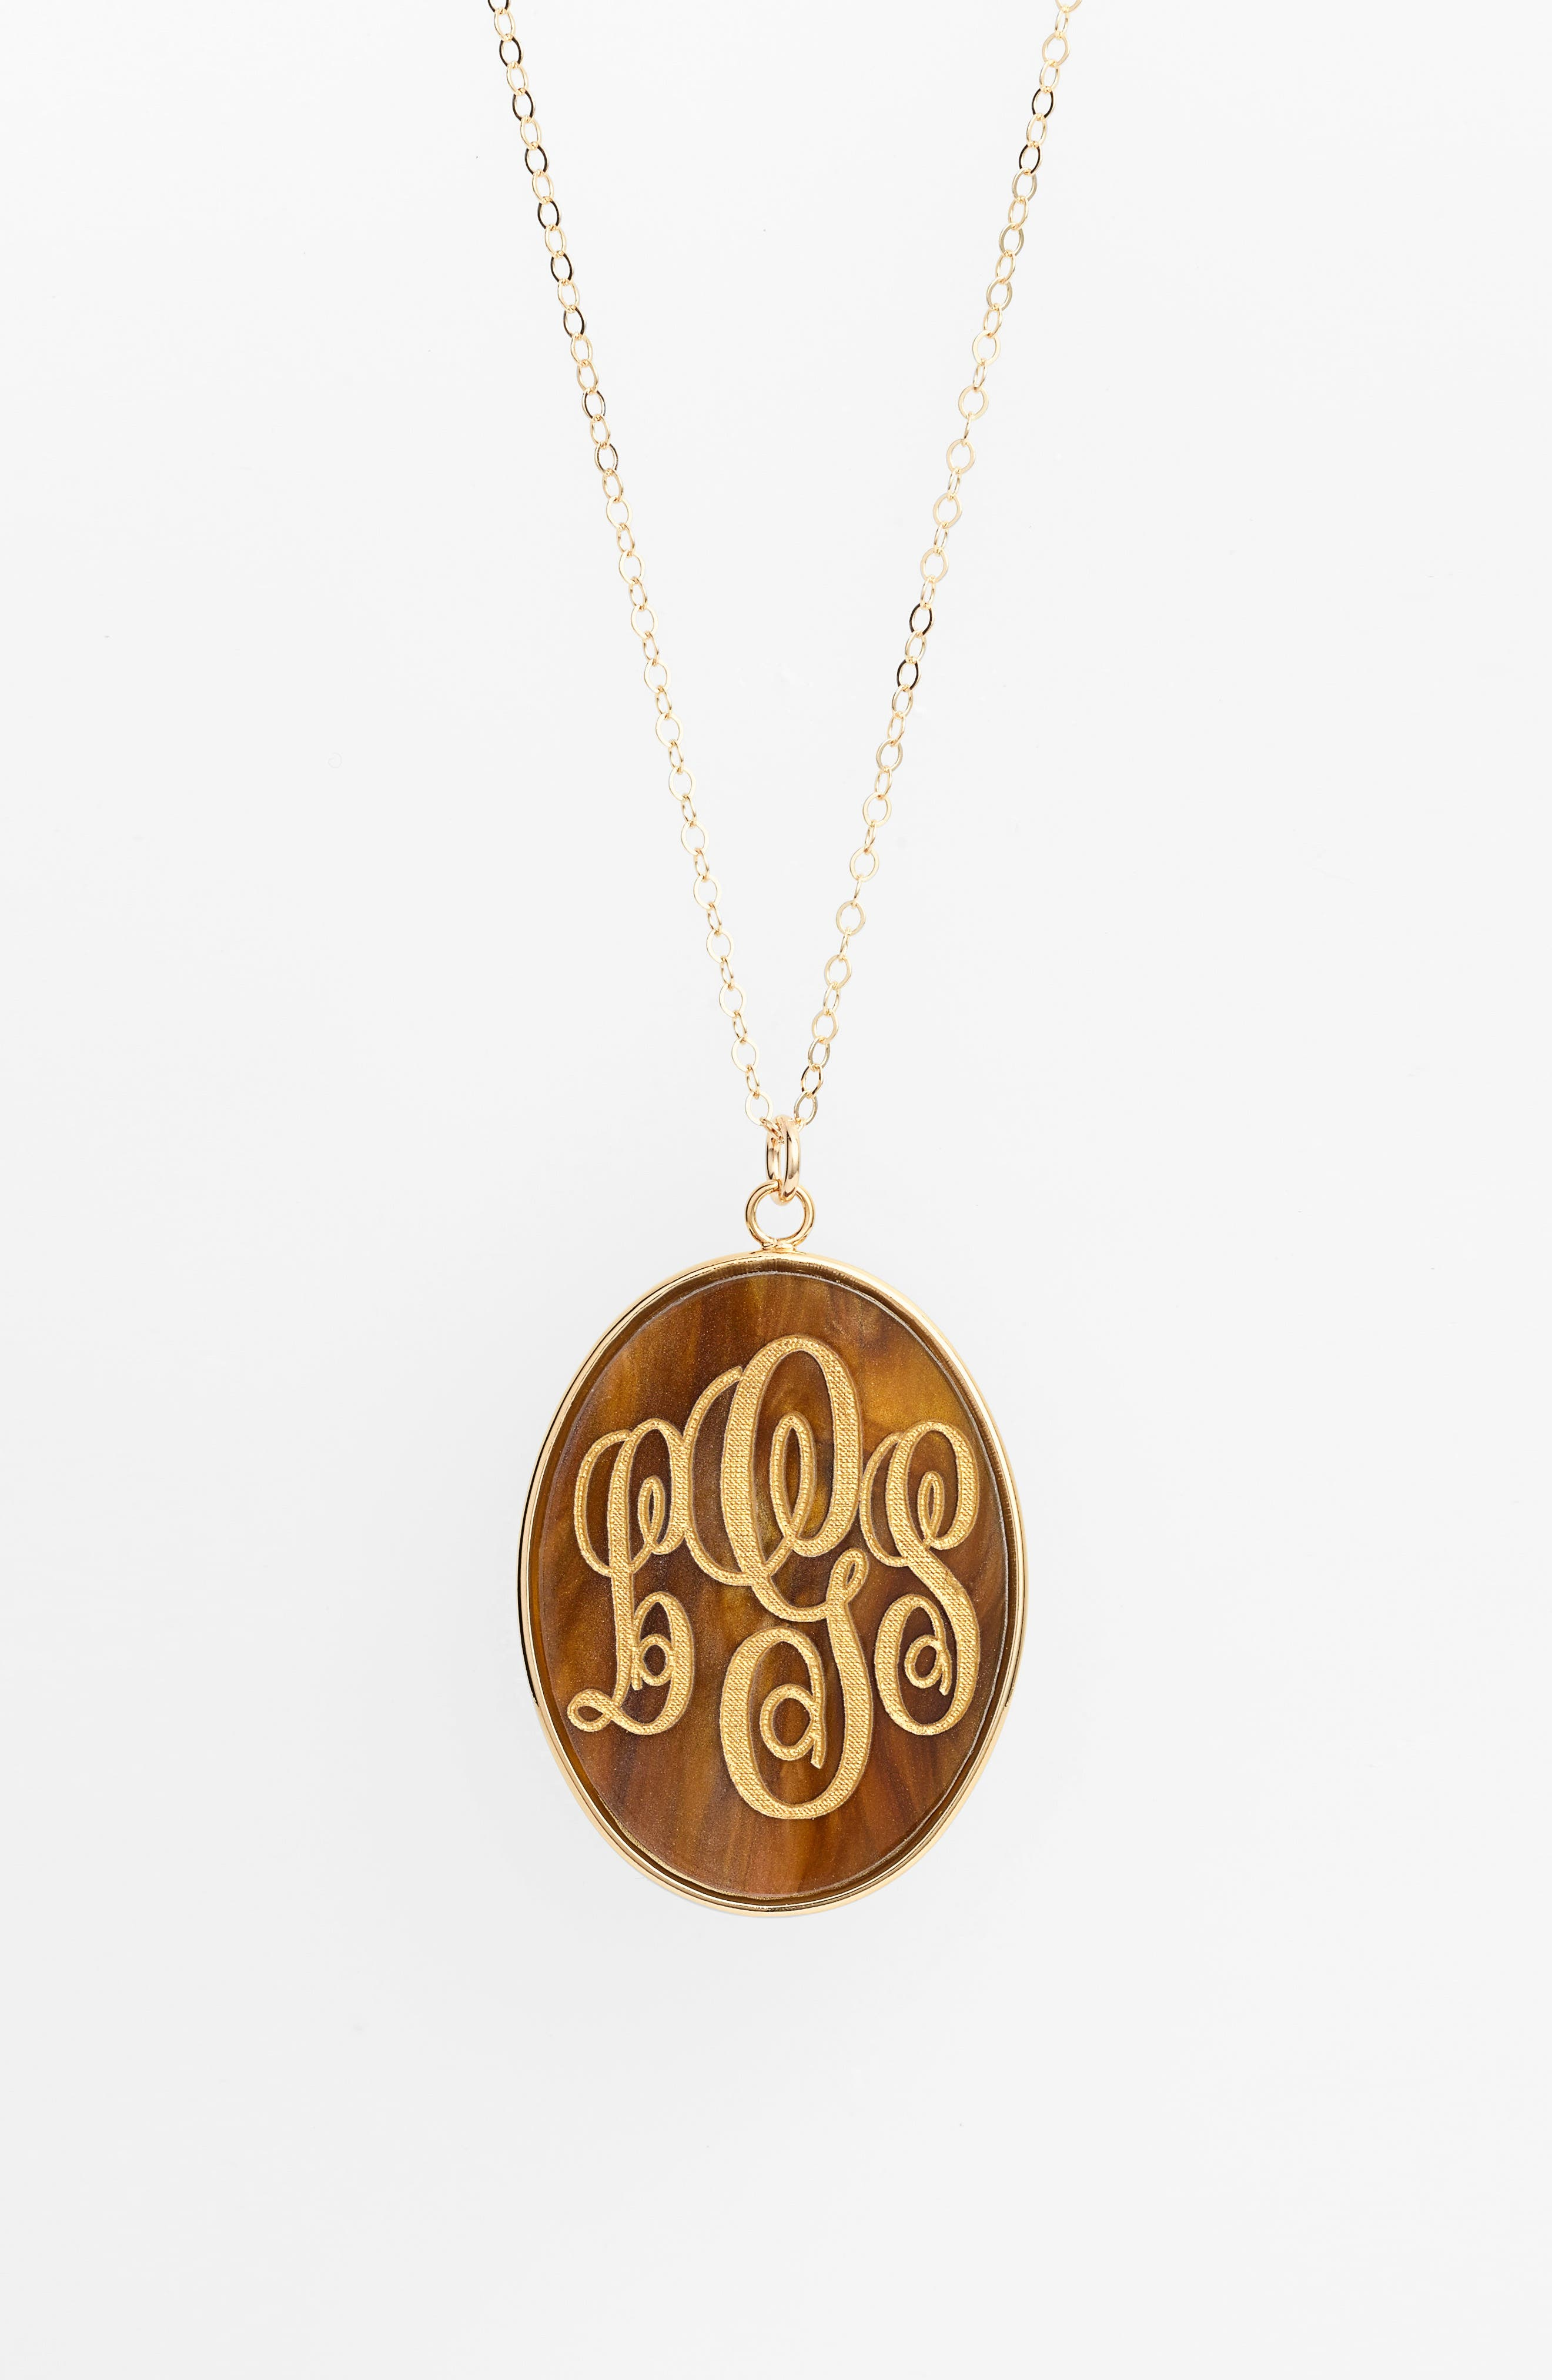 'Vineyard' Personalized Monogram Oval Pendant Necklace,                             Alternate thumbnail 4, color,                             TIGERS EYE